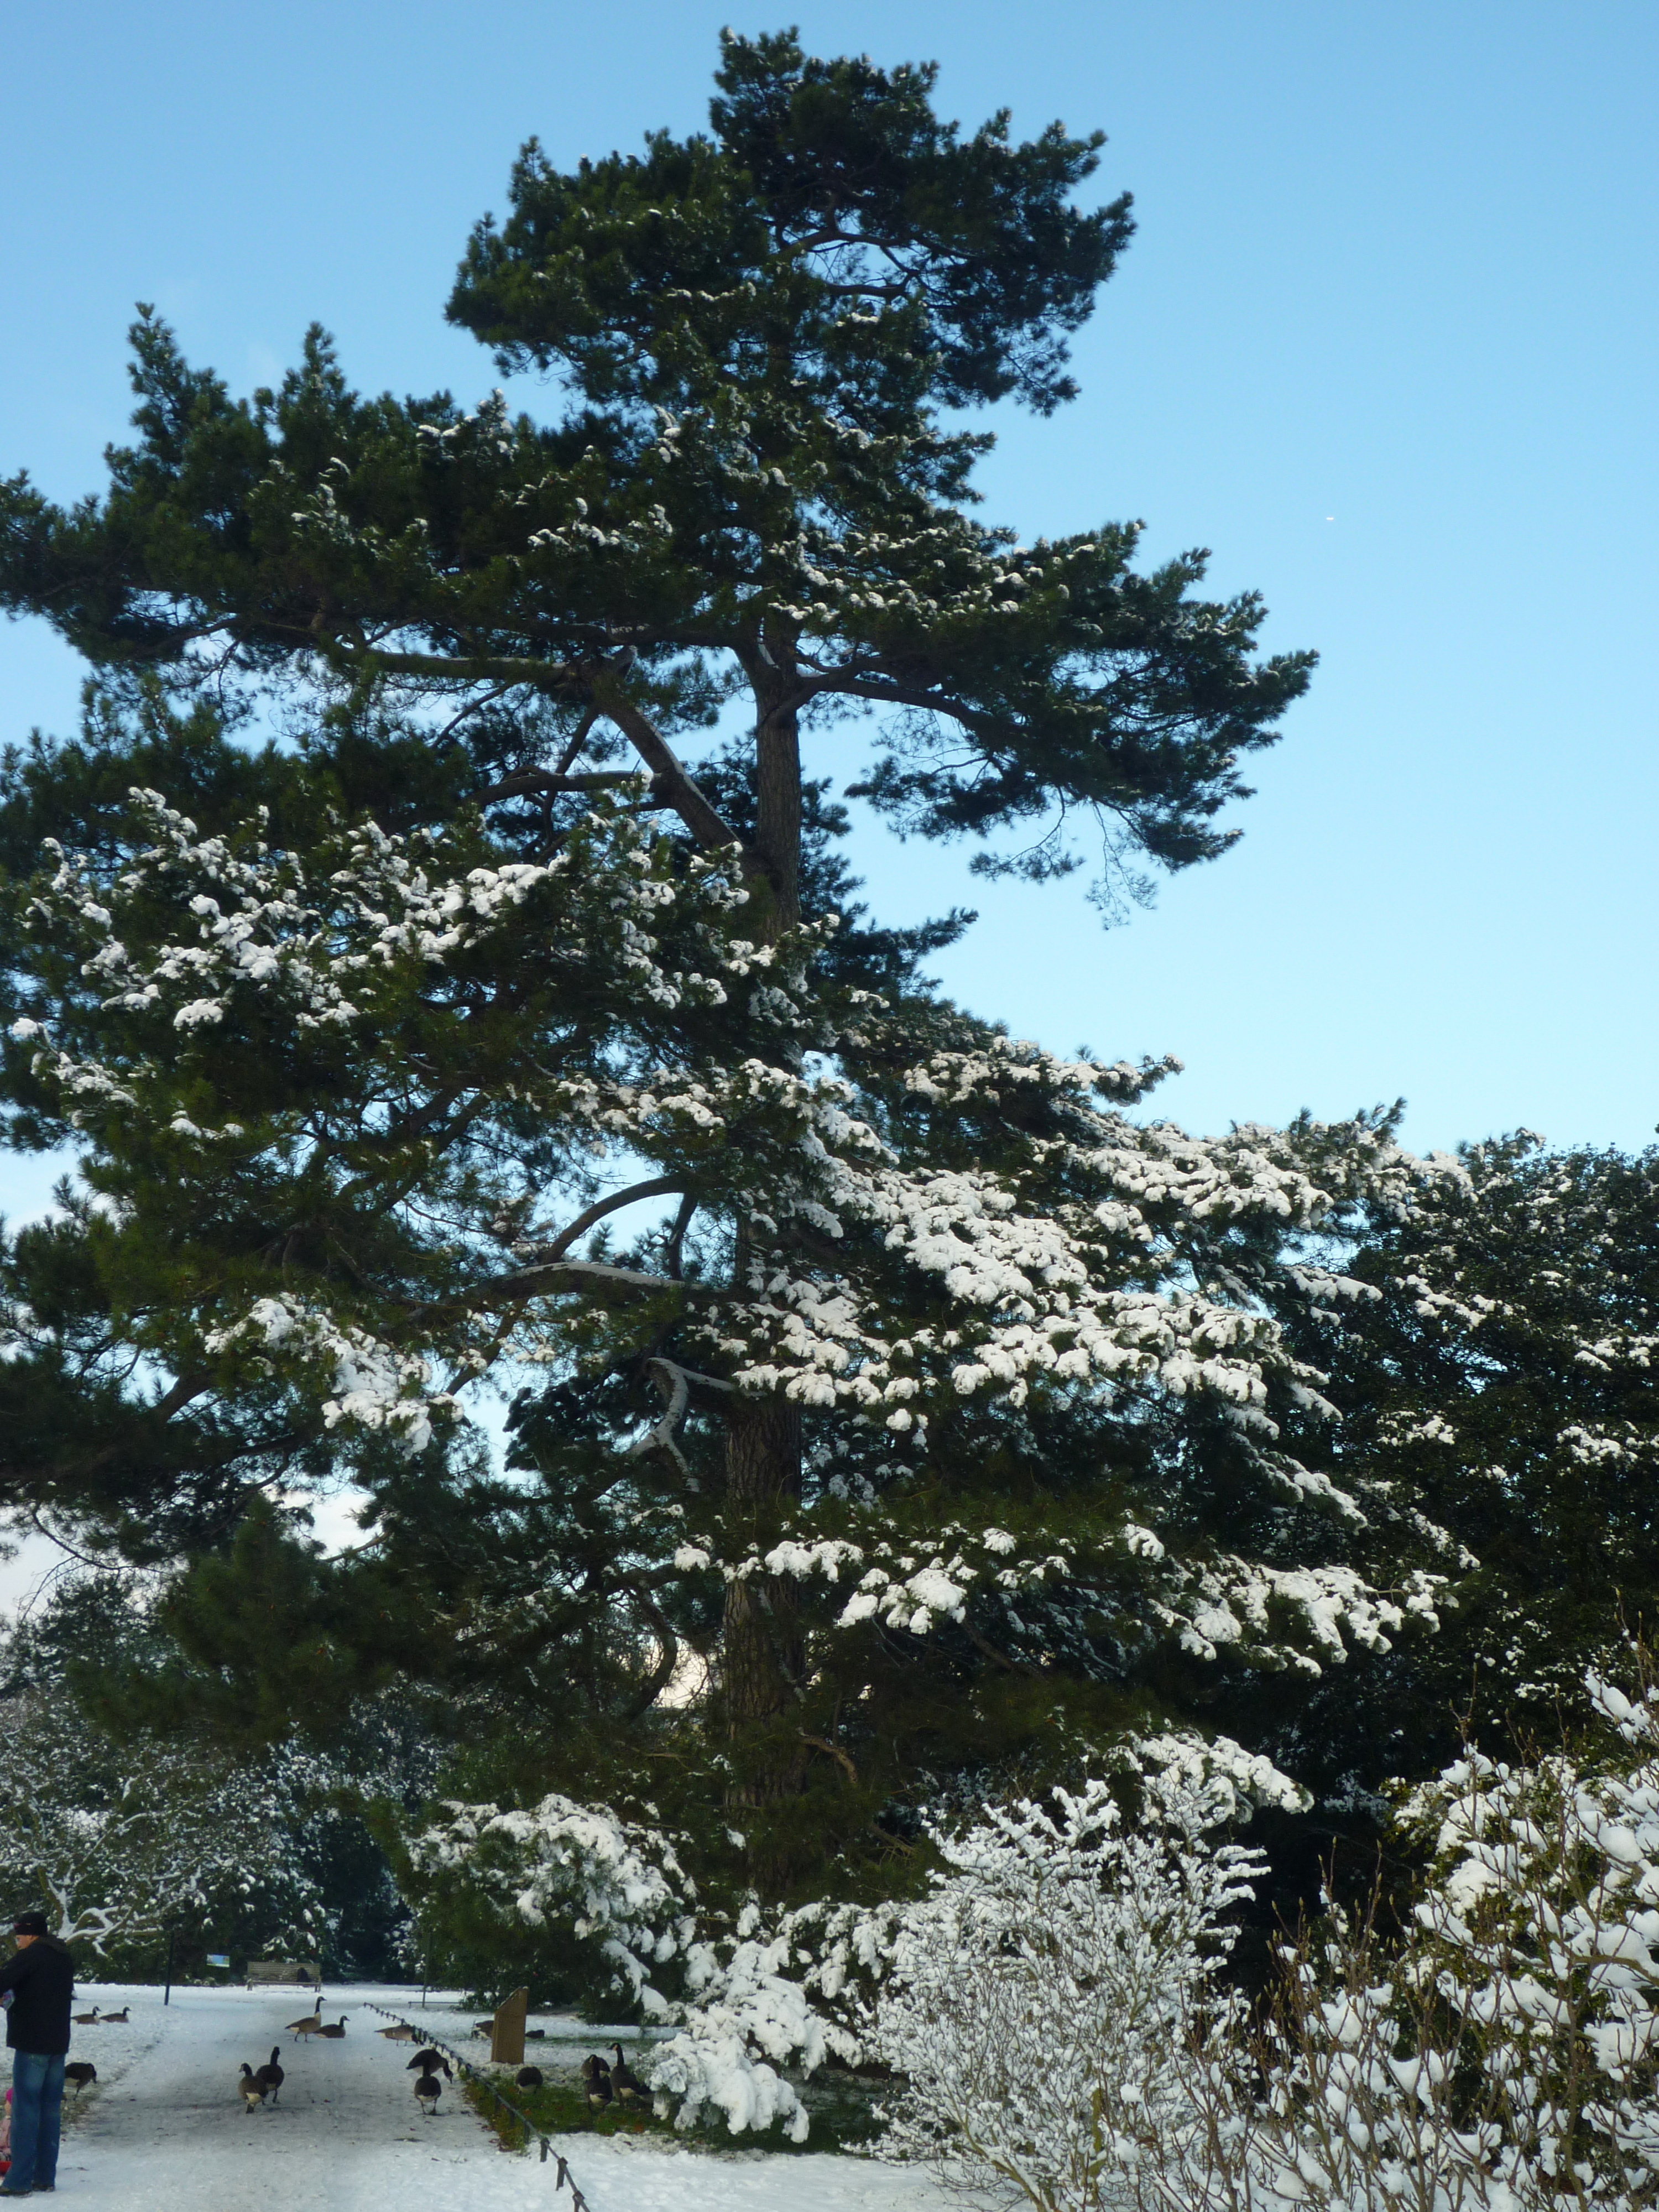 Die Corsican Pine im Winter. Author: Kew on Flickr. Creative Commons 2.0